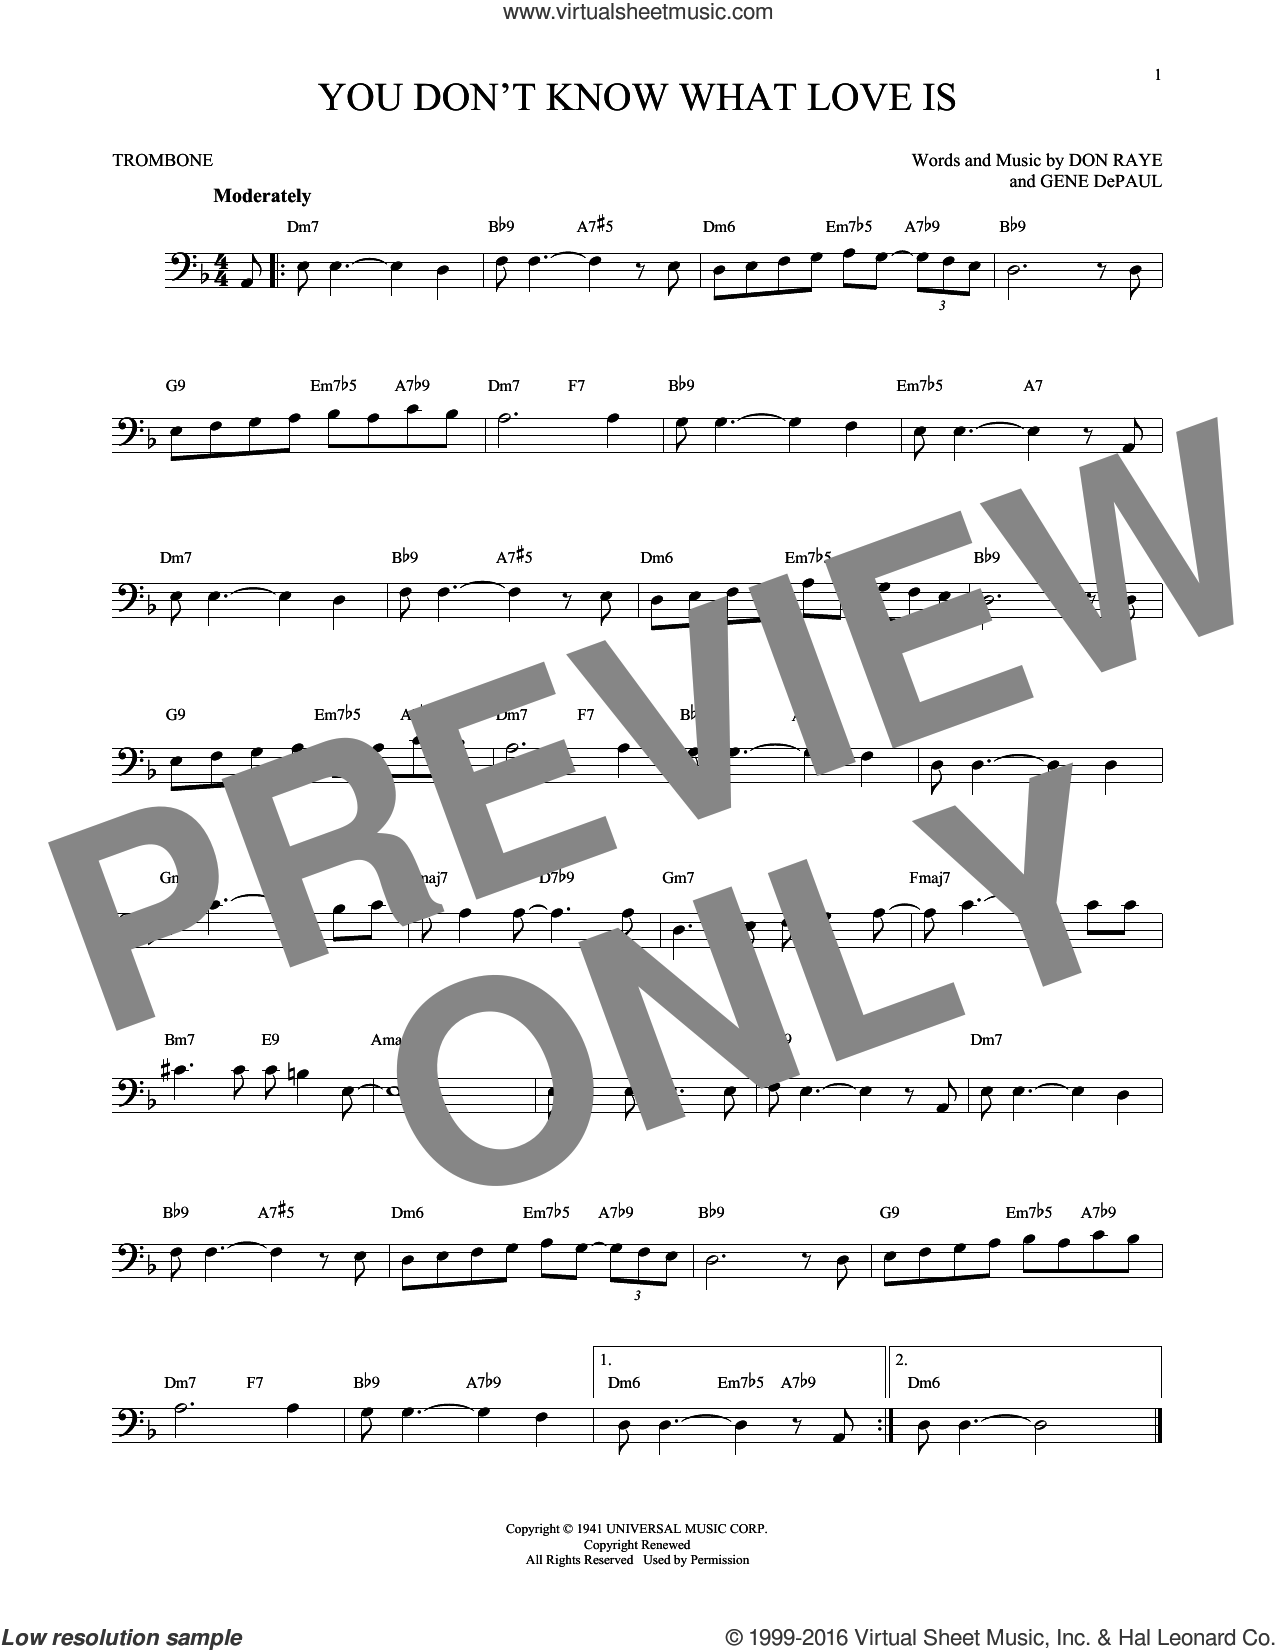 You Don't Know What Love Is sheet music for trombone solo by Carol Bruce, Don Raye and Gene DePaul, intermediate